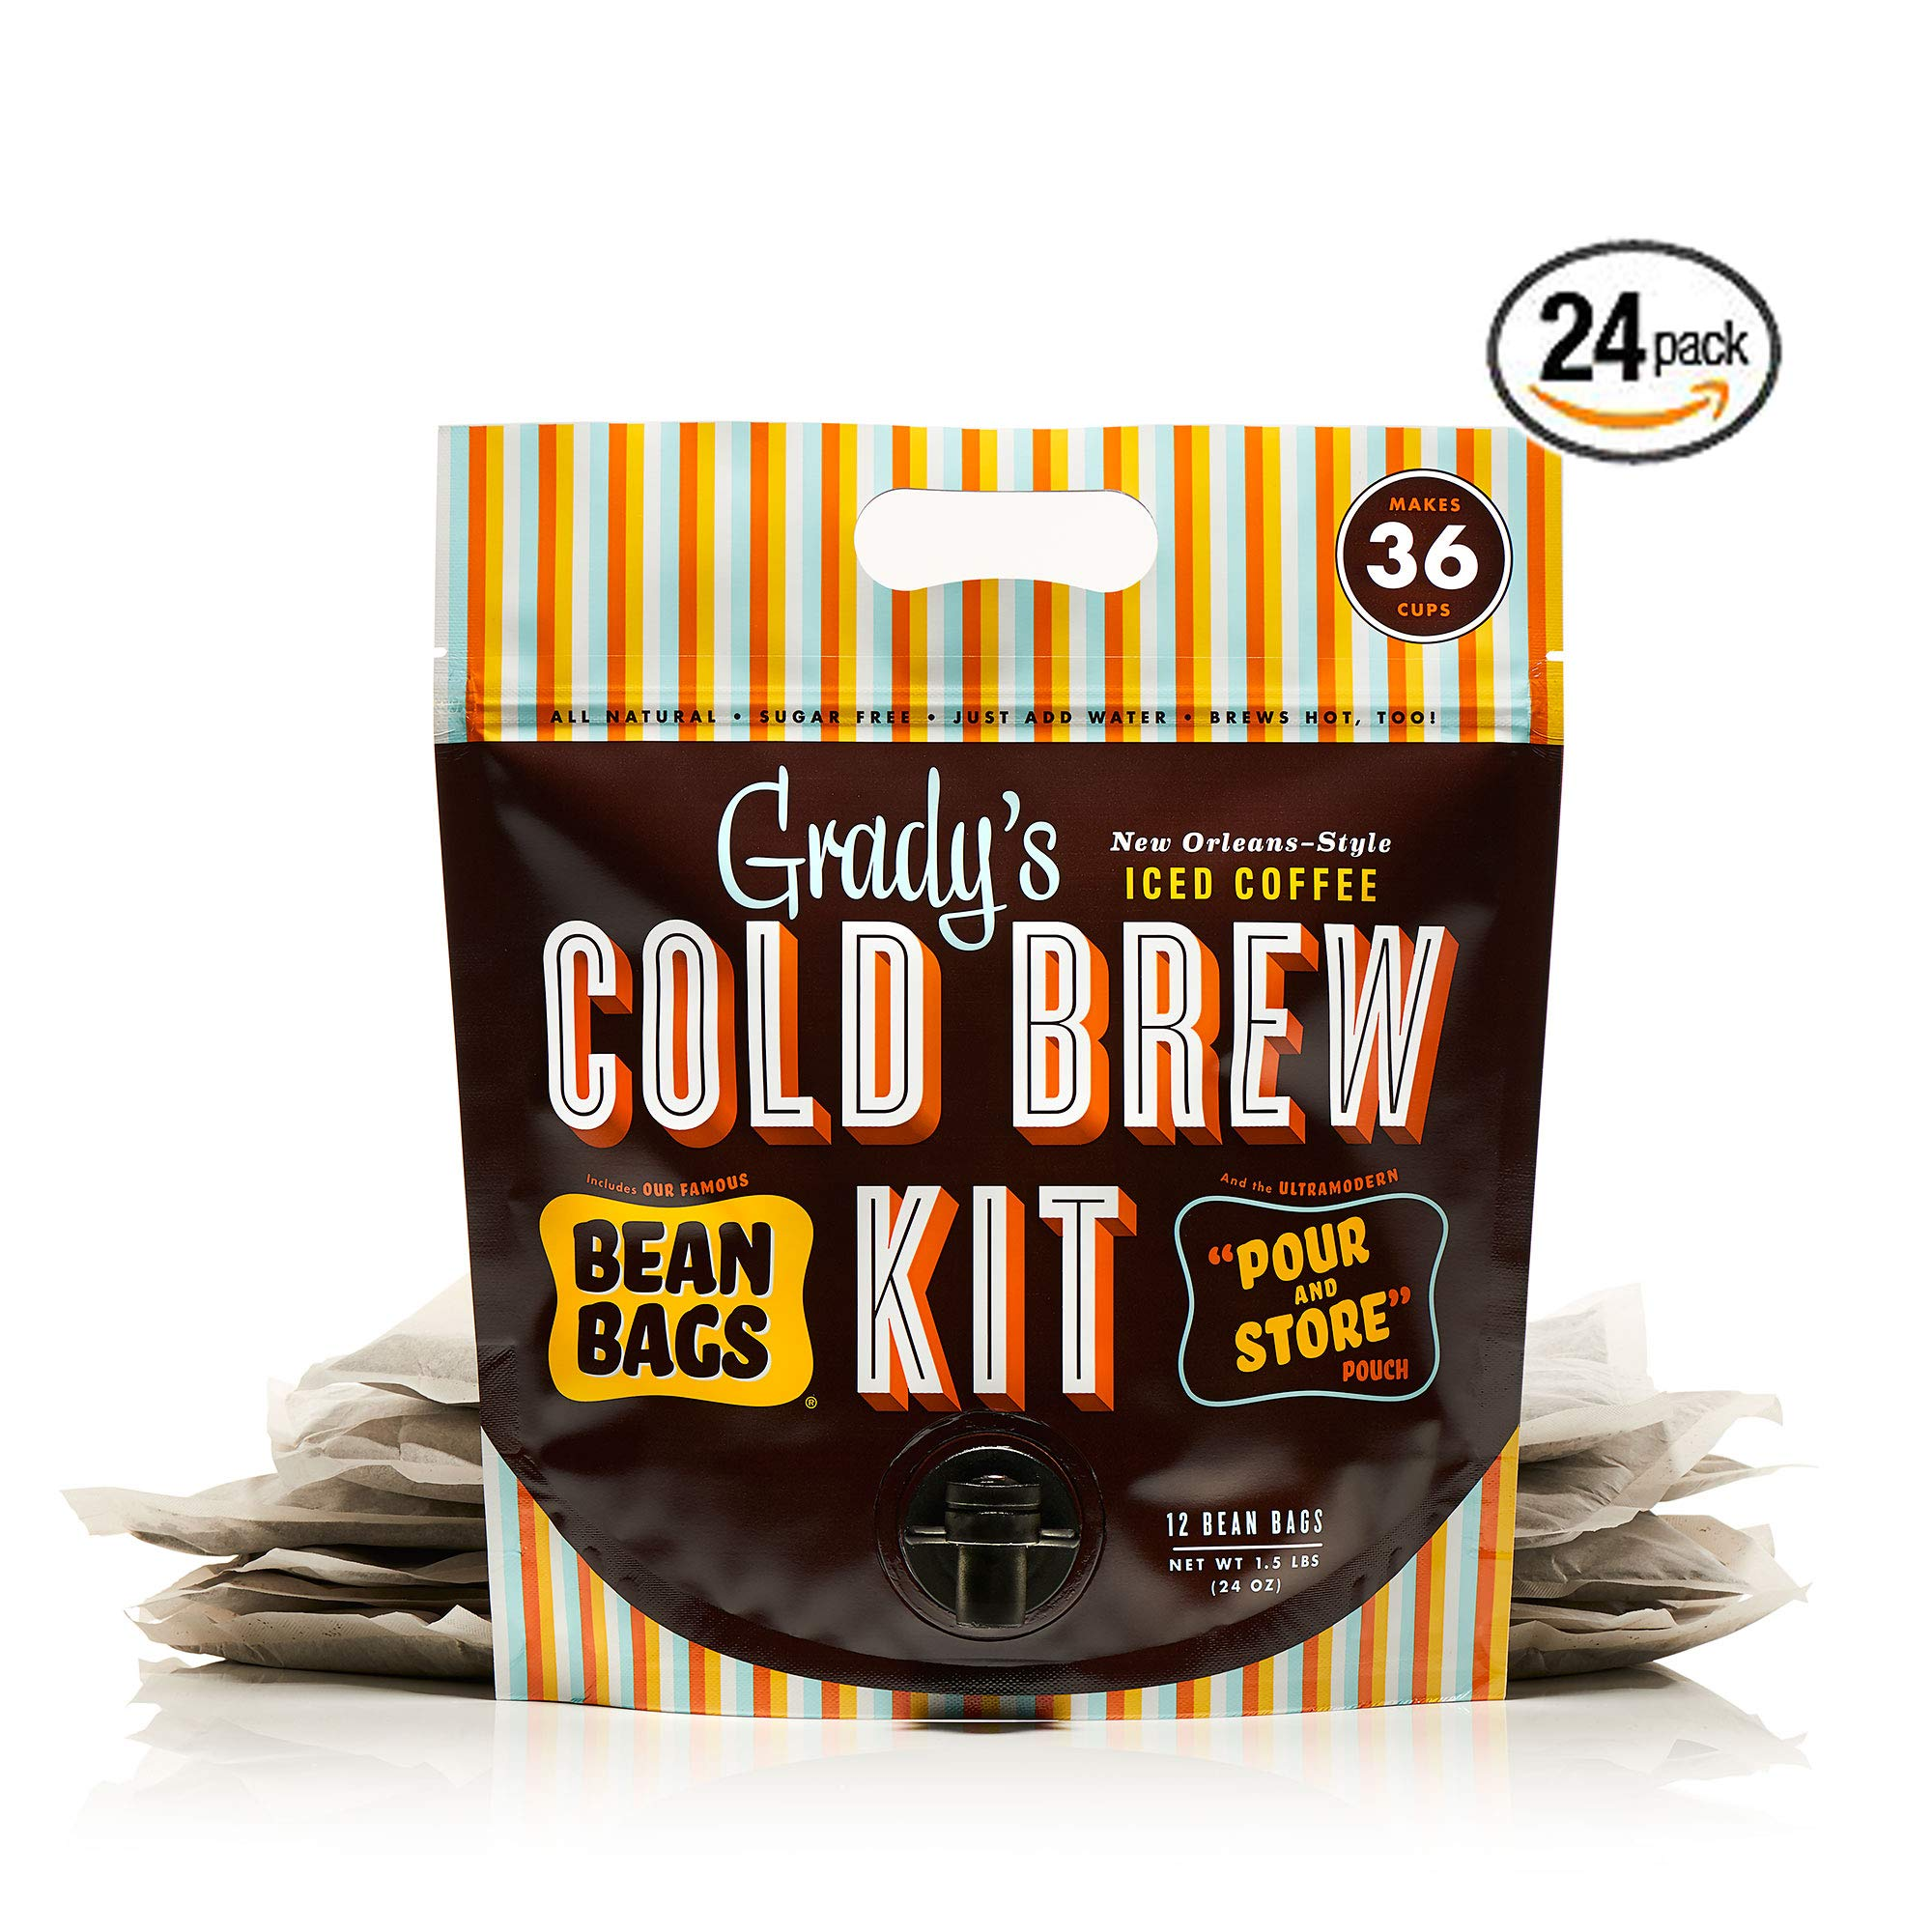 Grady's Cold Brew Iced Coffee Kit, New Orleans Style, 24 ounces (Pack of 24) by Grady's Cold Brew